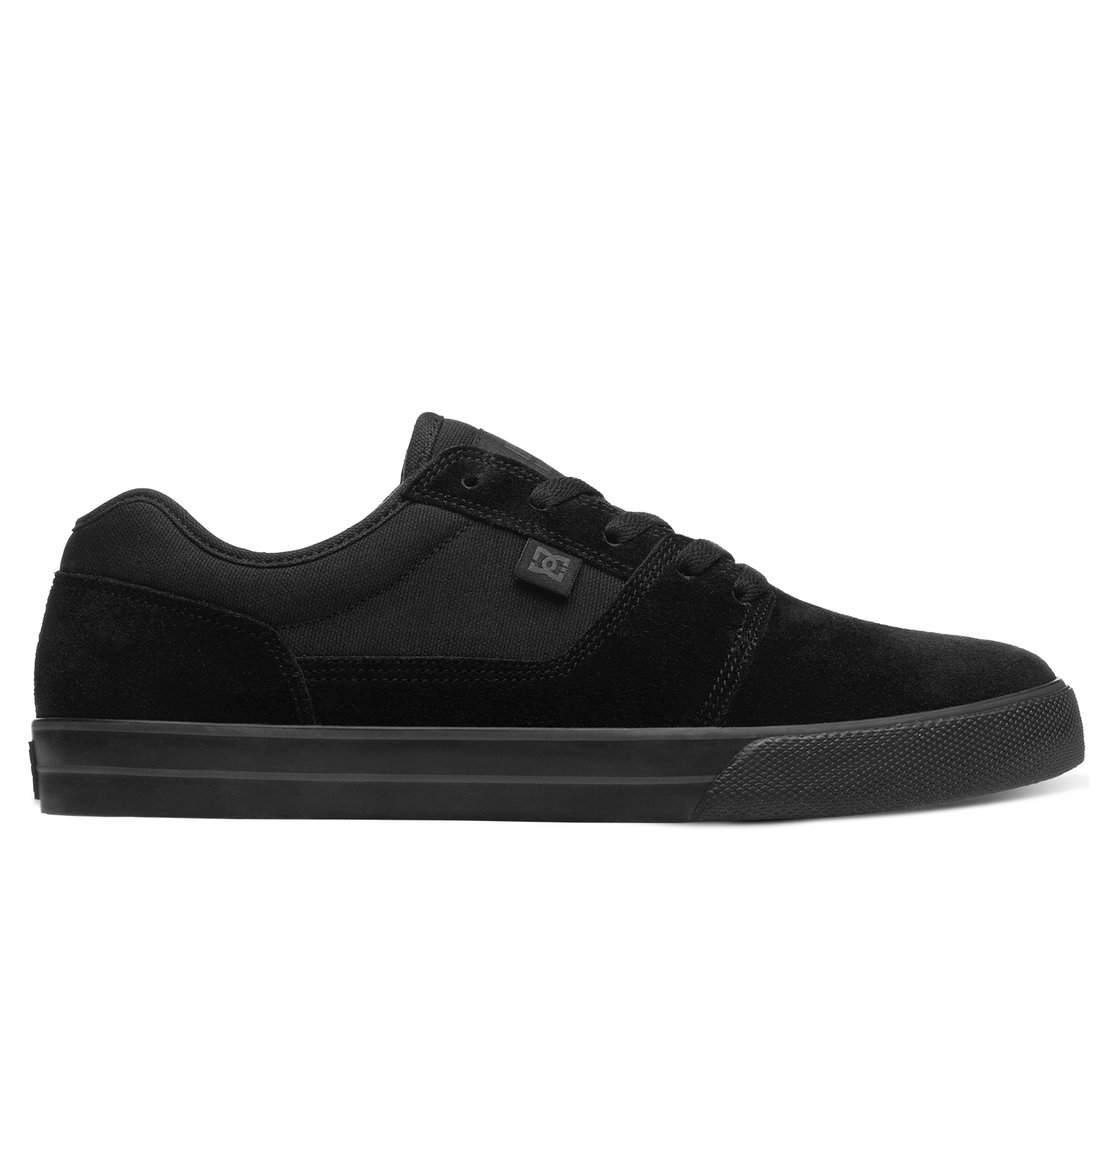 Dc Tonik Skate Shoes Black Blue